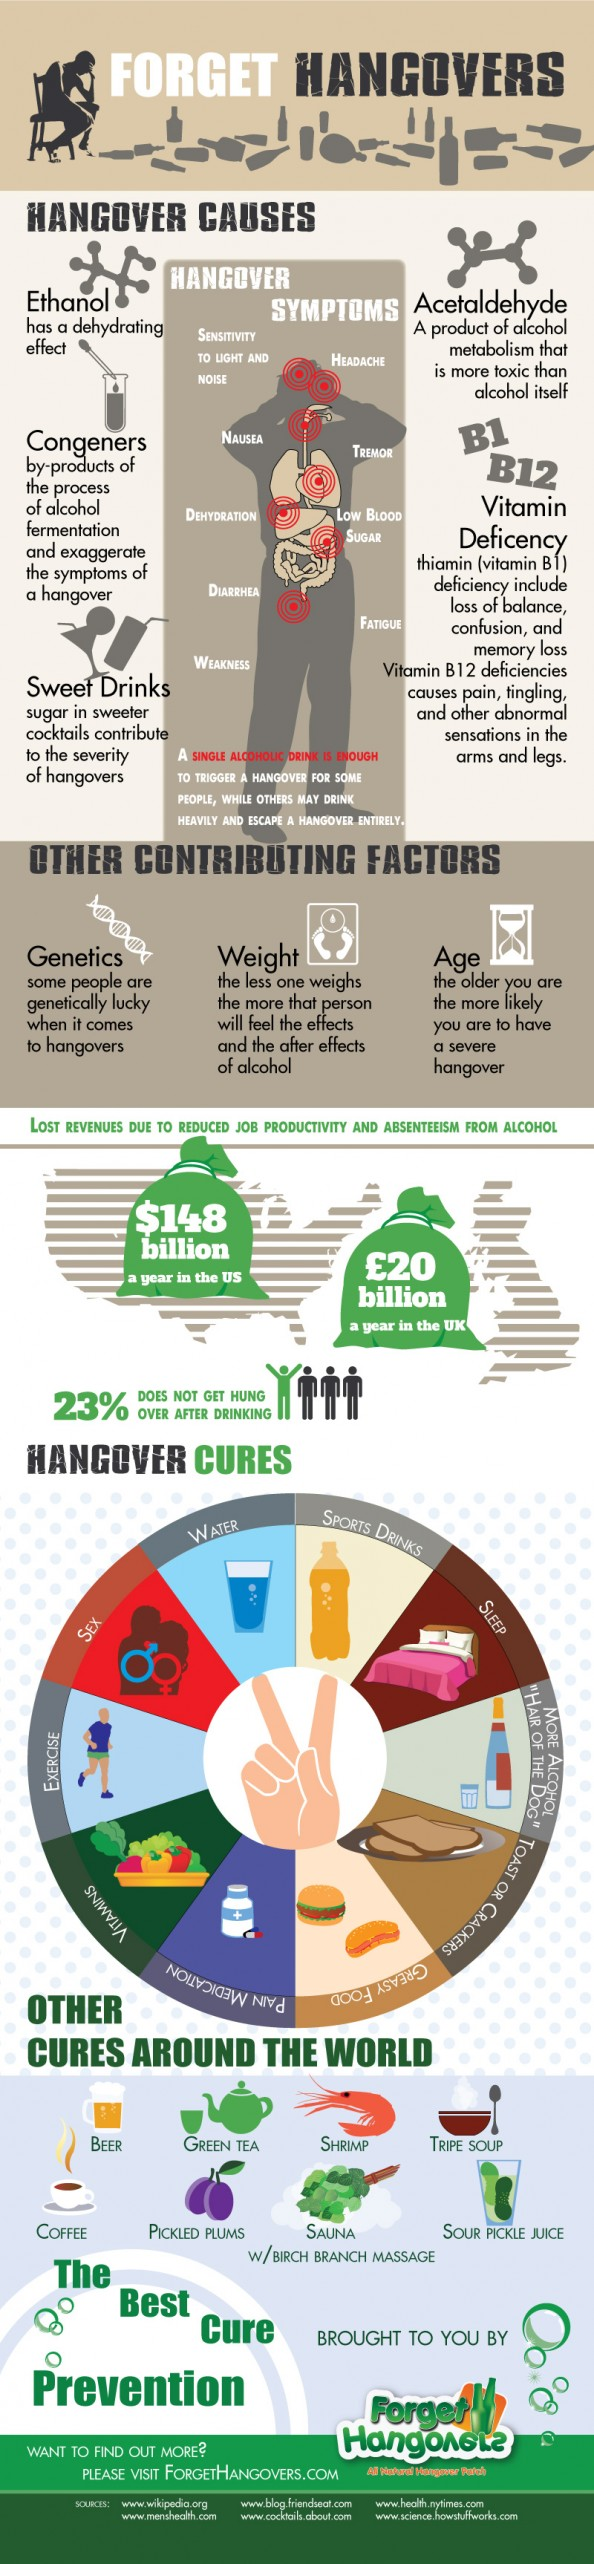 forget-hangovers